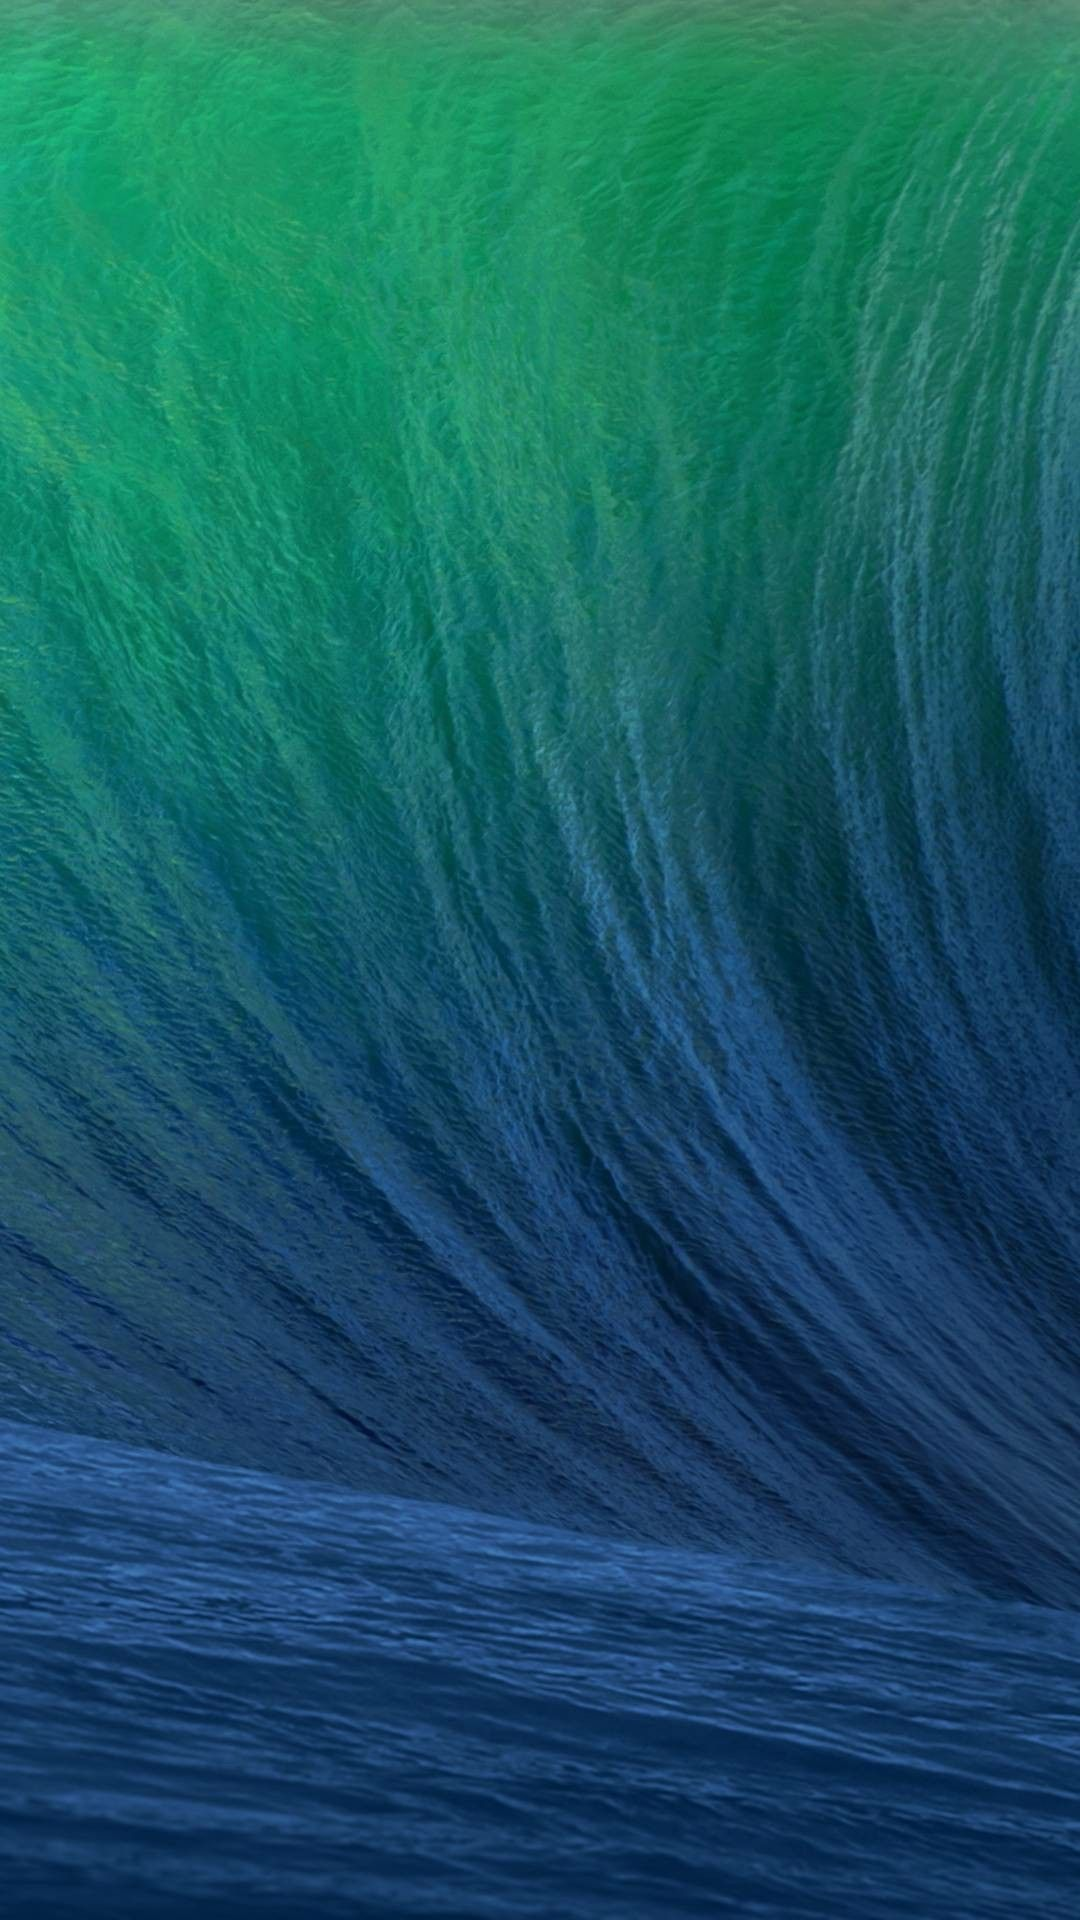 Pin by Tabatha Parker on Wallpaper Waves wallpaper